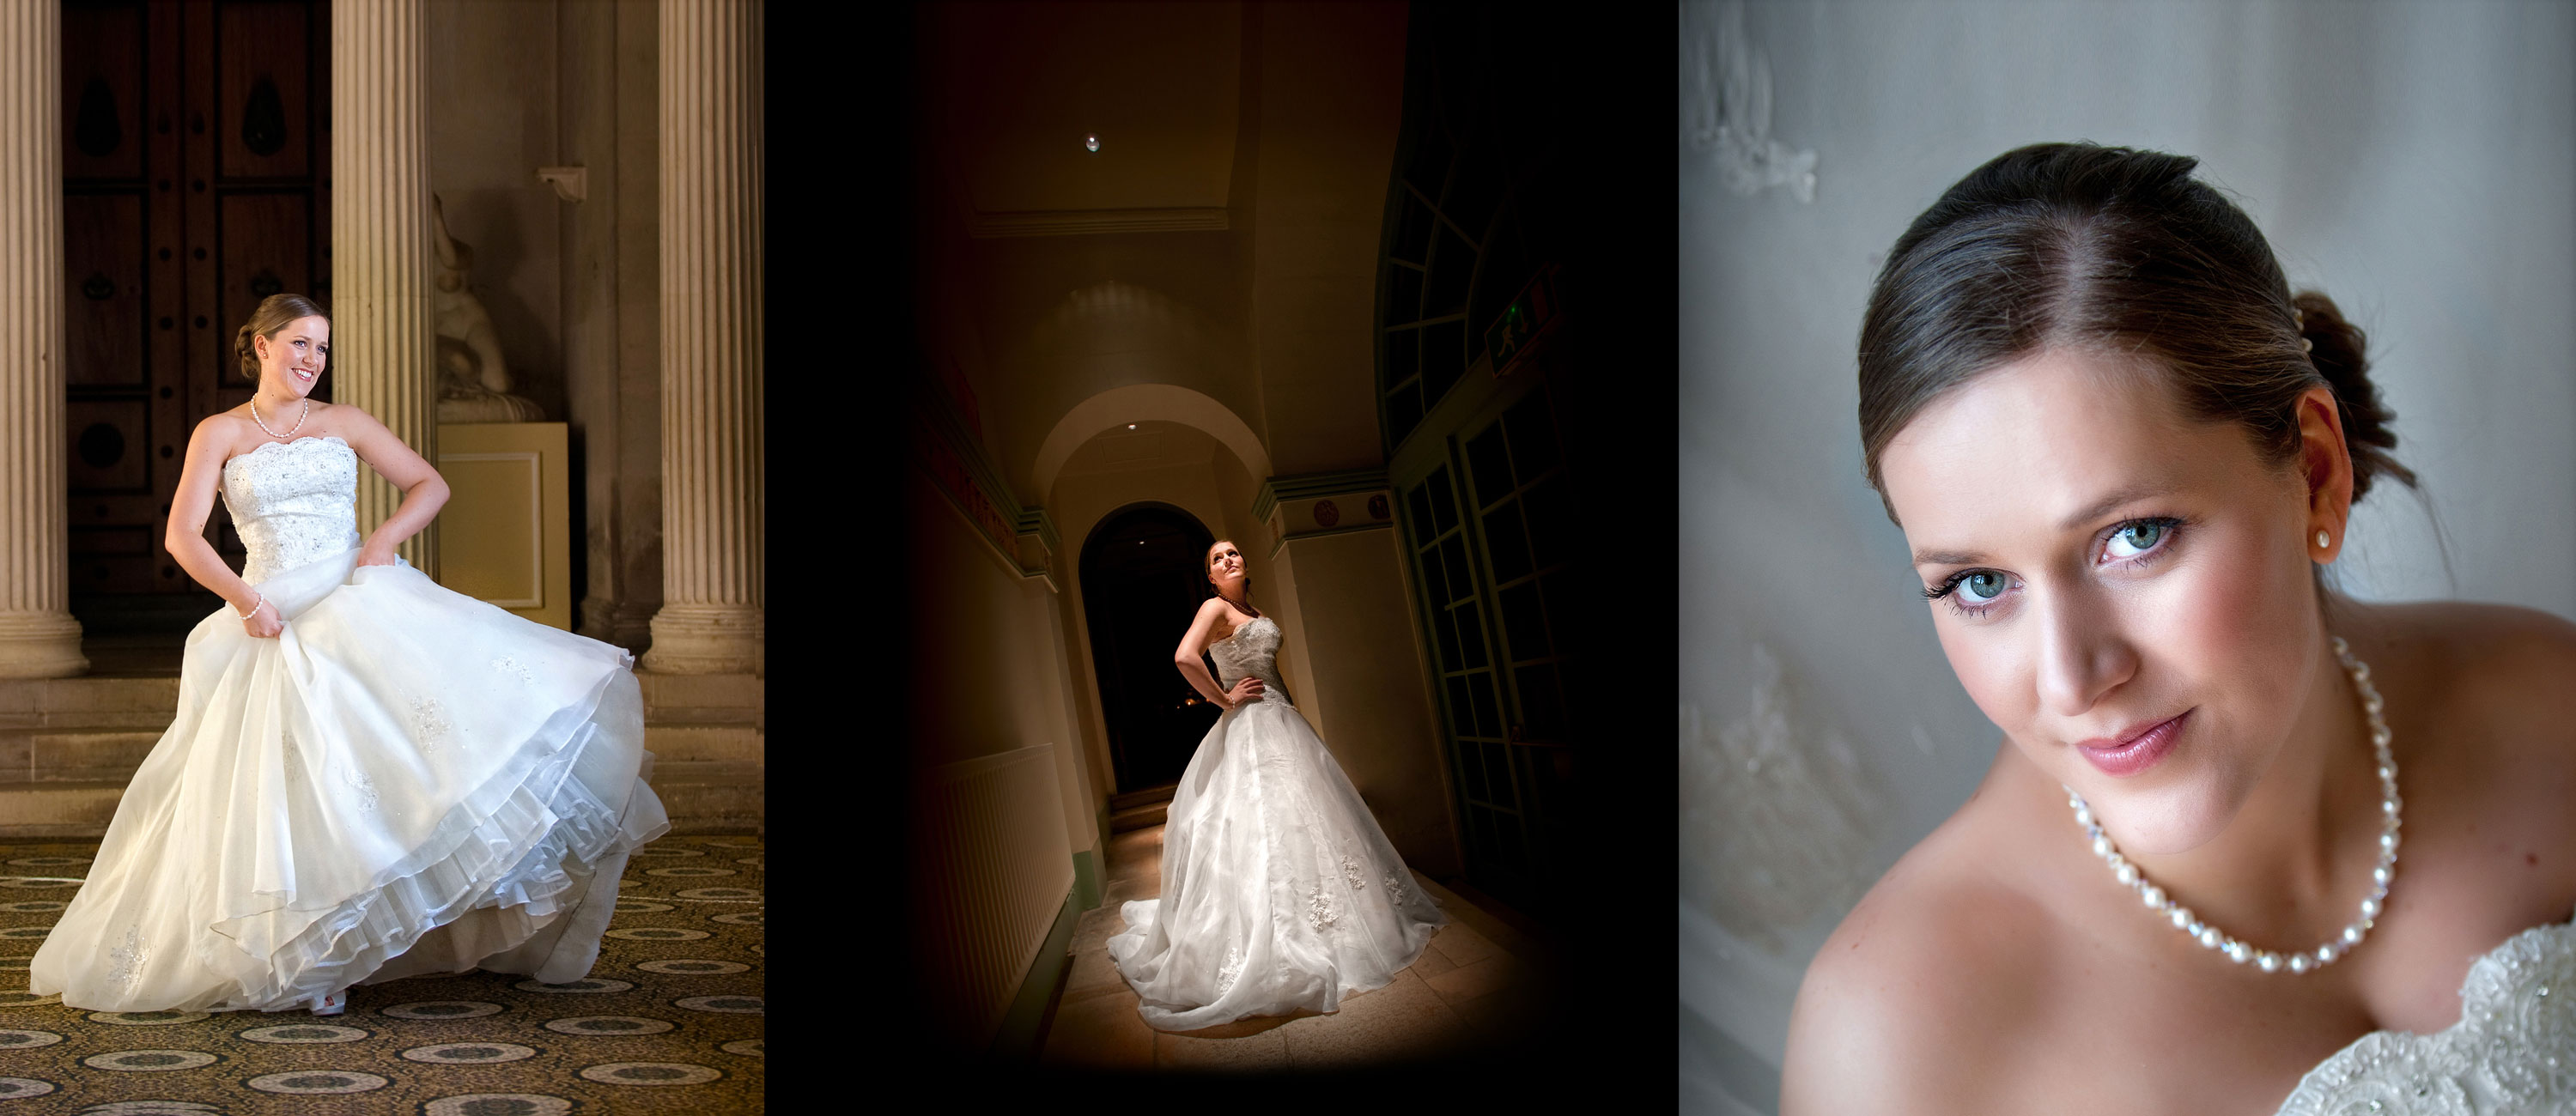 sculpture gallery wedding photographer